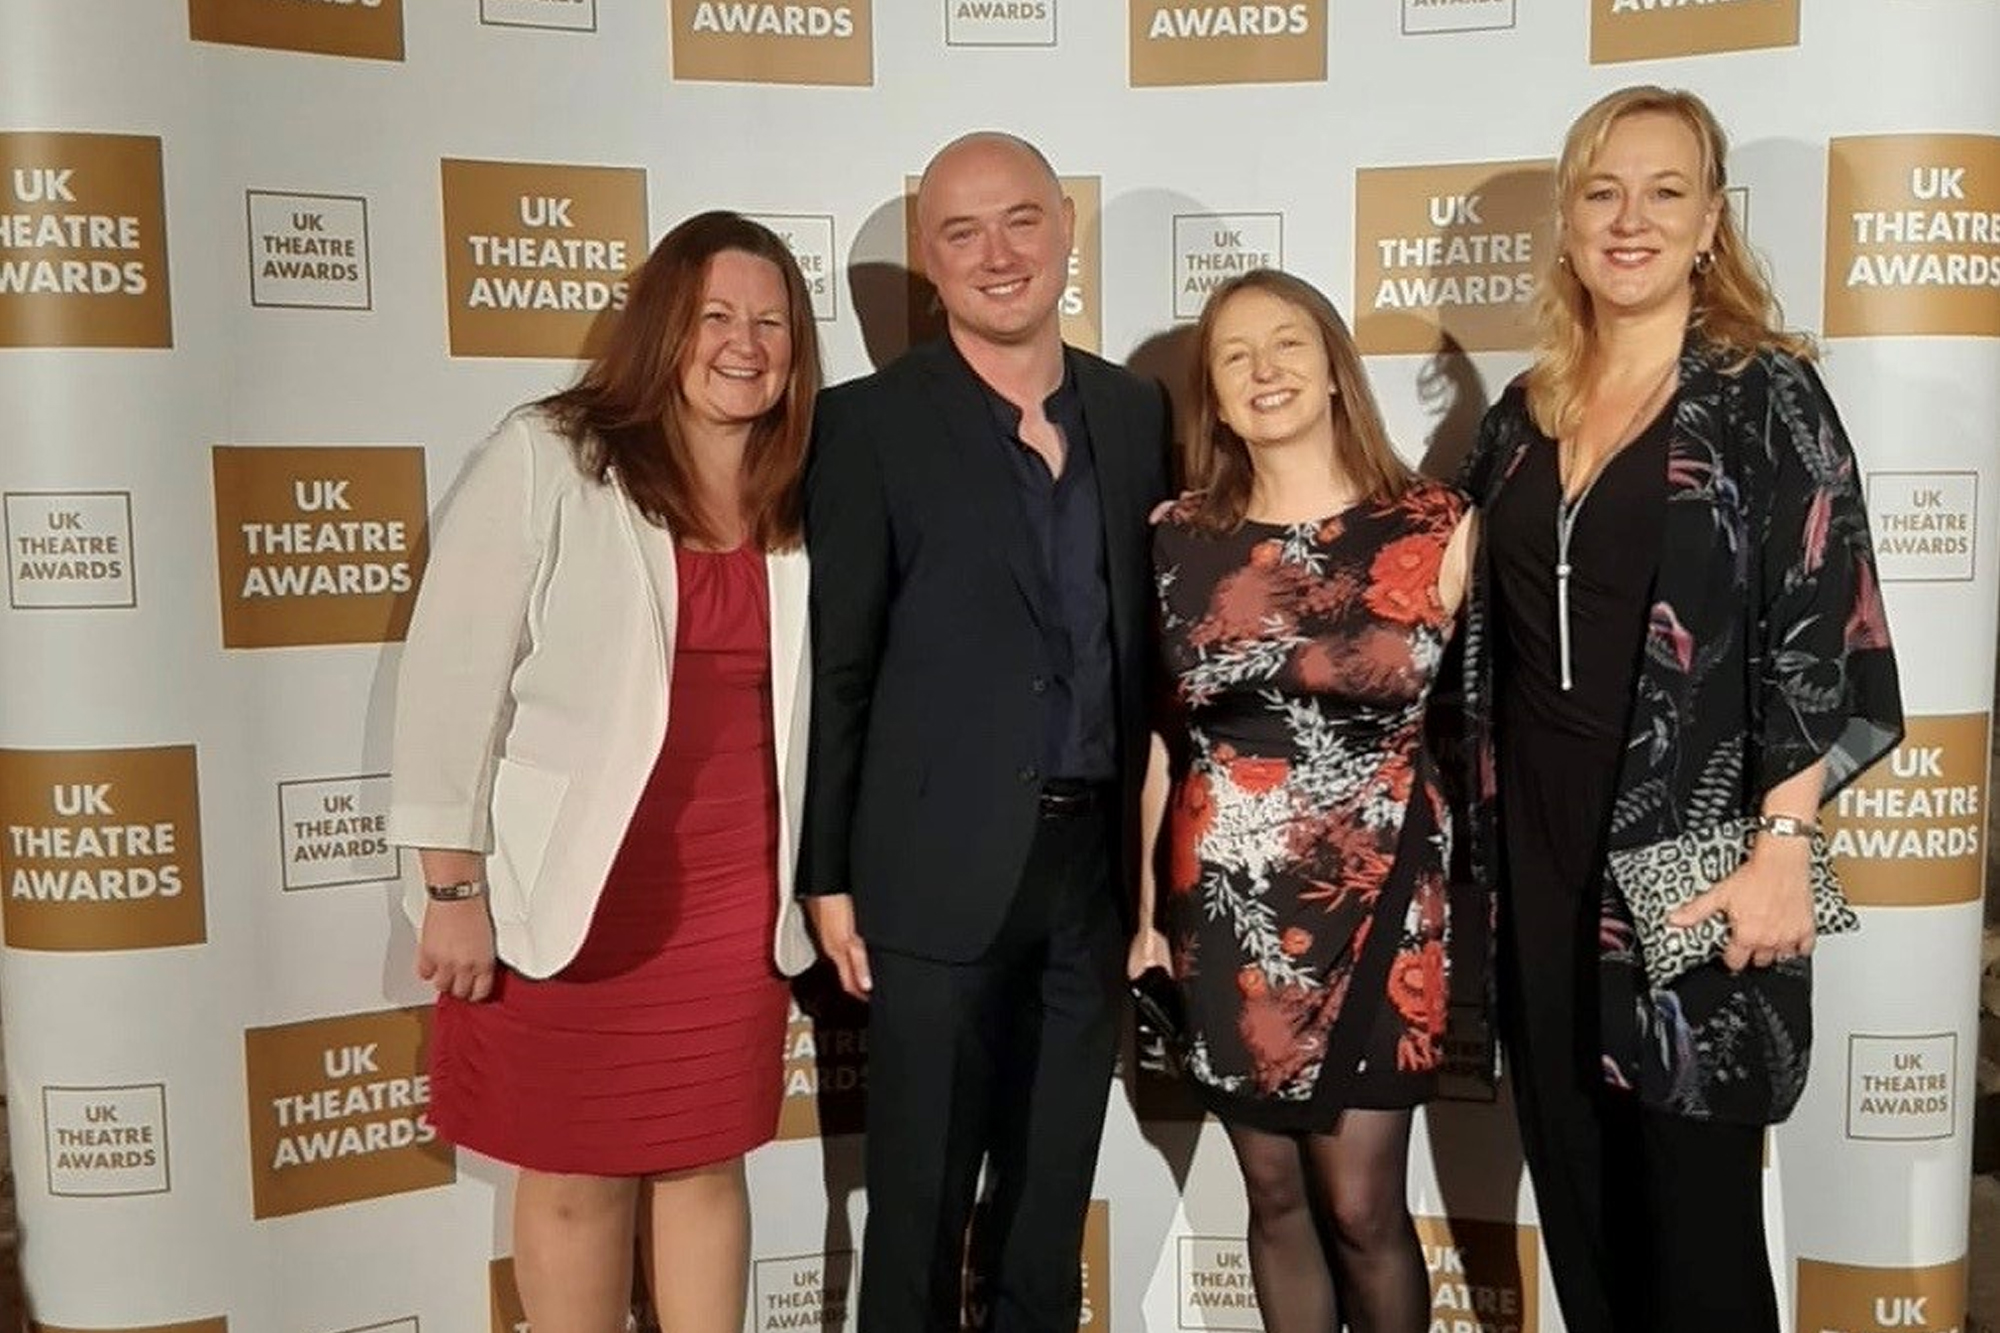 Team from Derby Theatre stand for their photo at the UK Theatre Awards